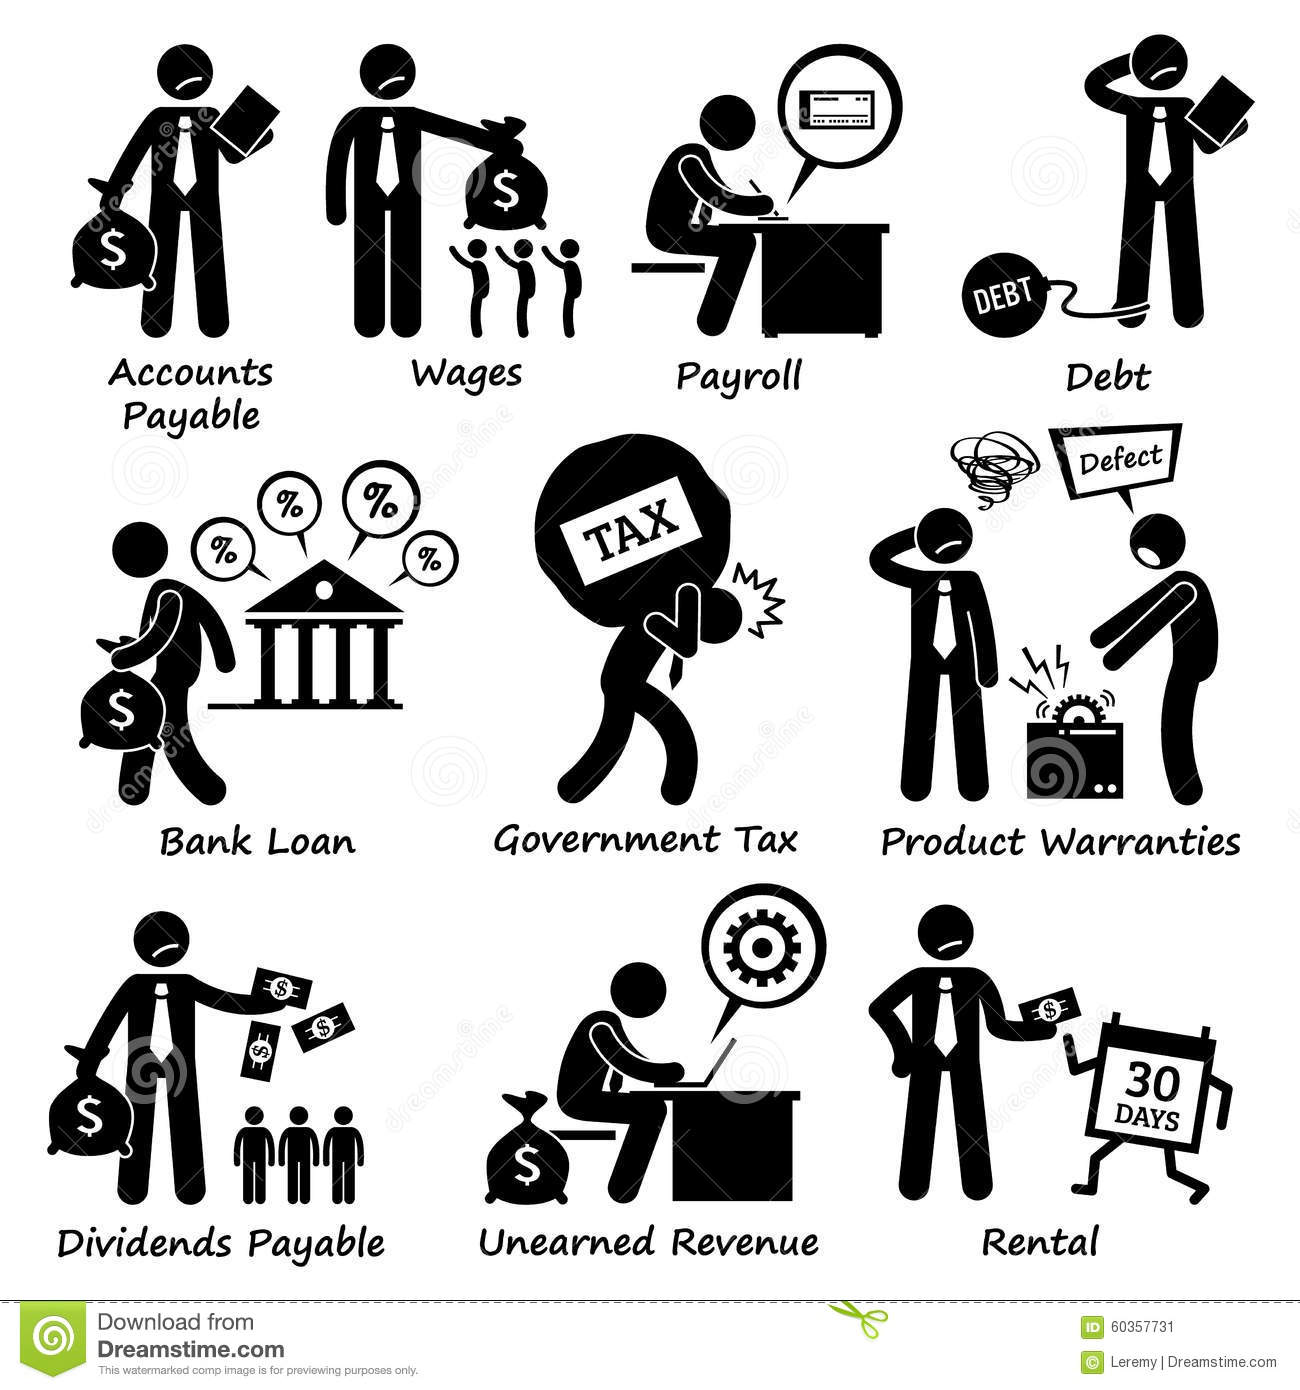 Company Business Assets Pictogram Clipart Stock Vector.